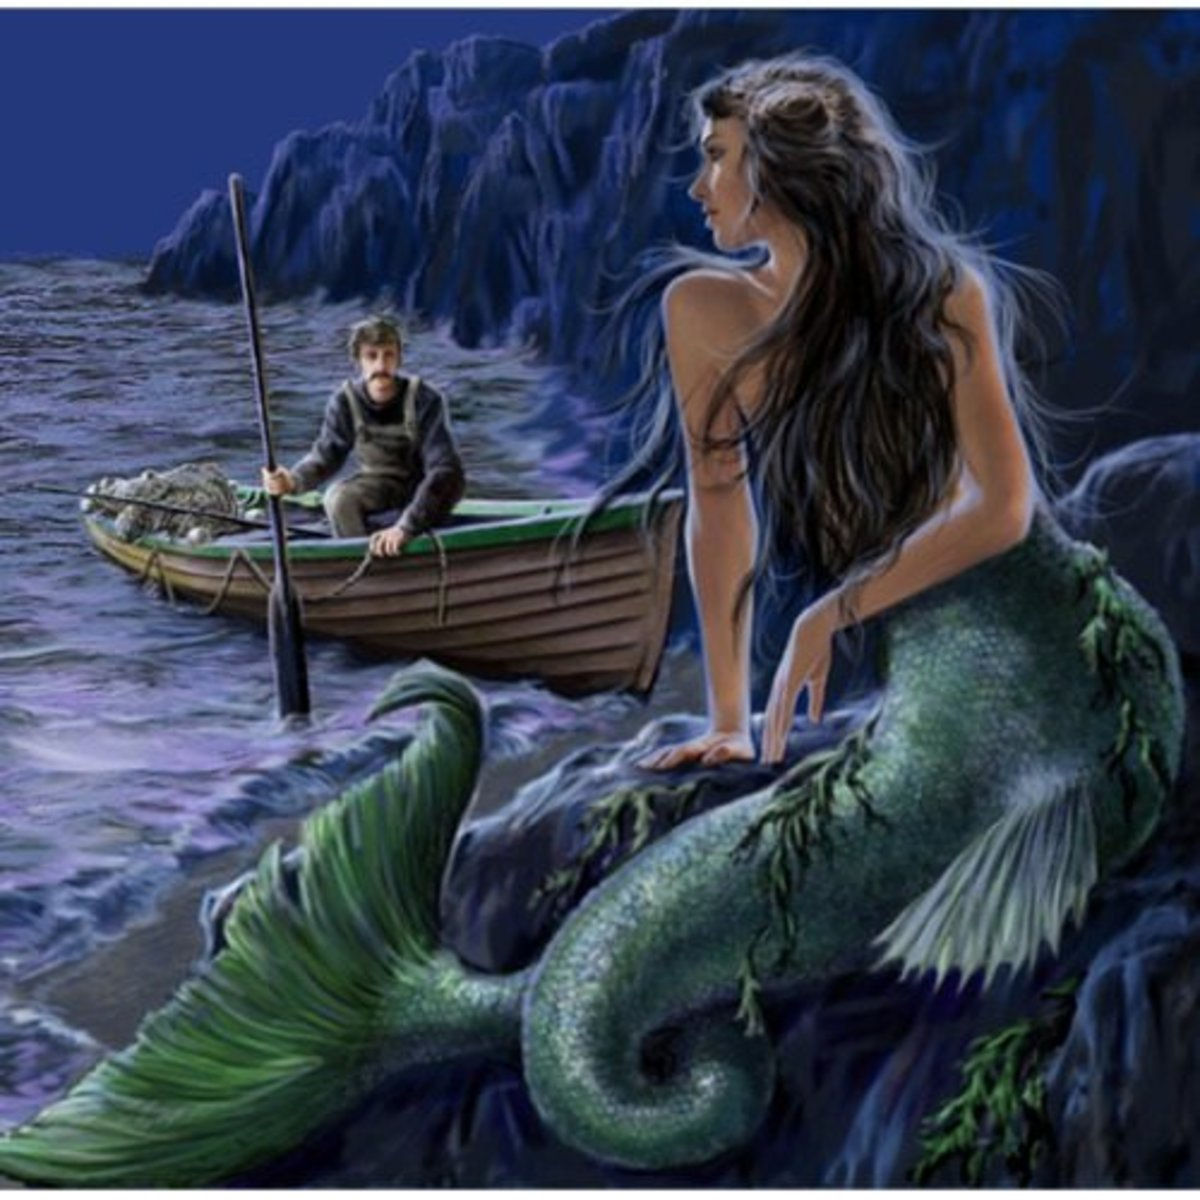 Were mermaids simply women with monofins?